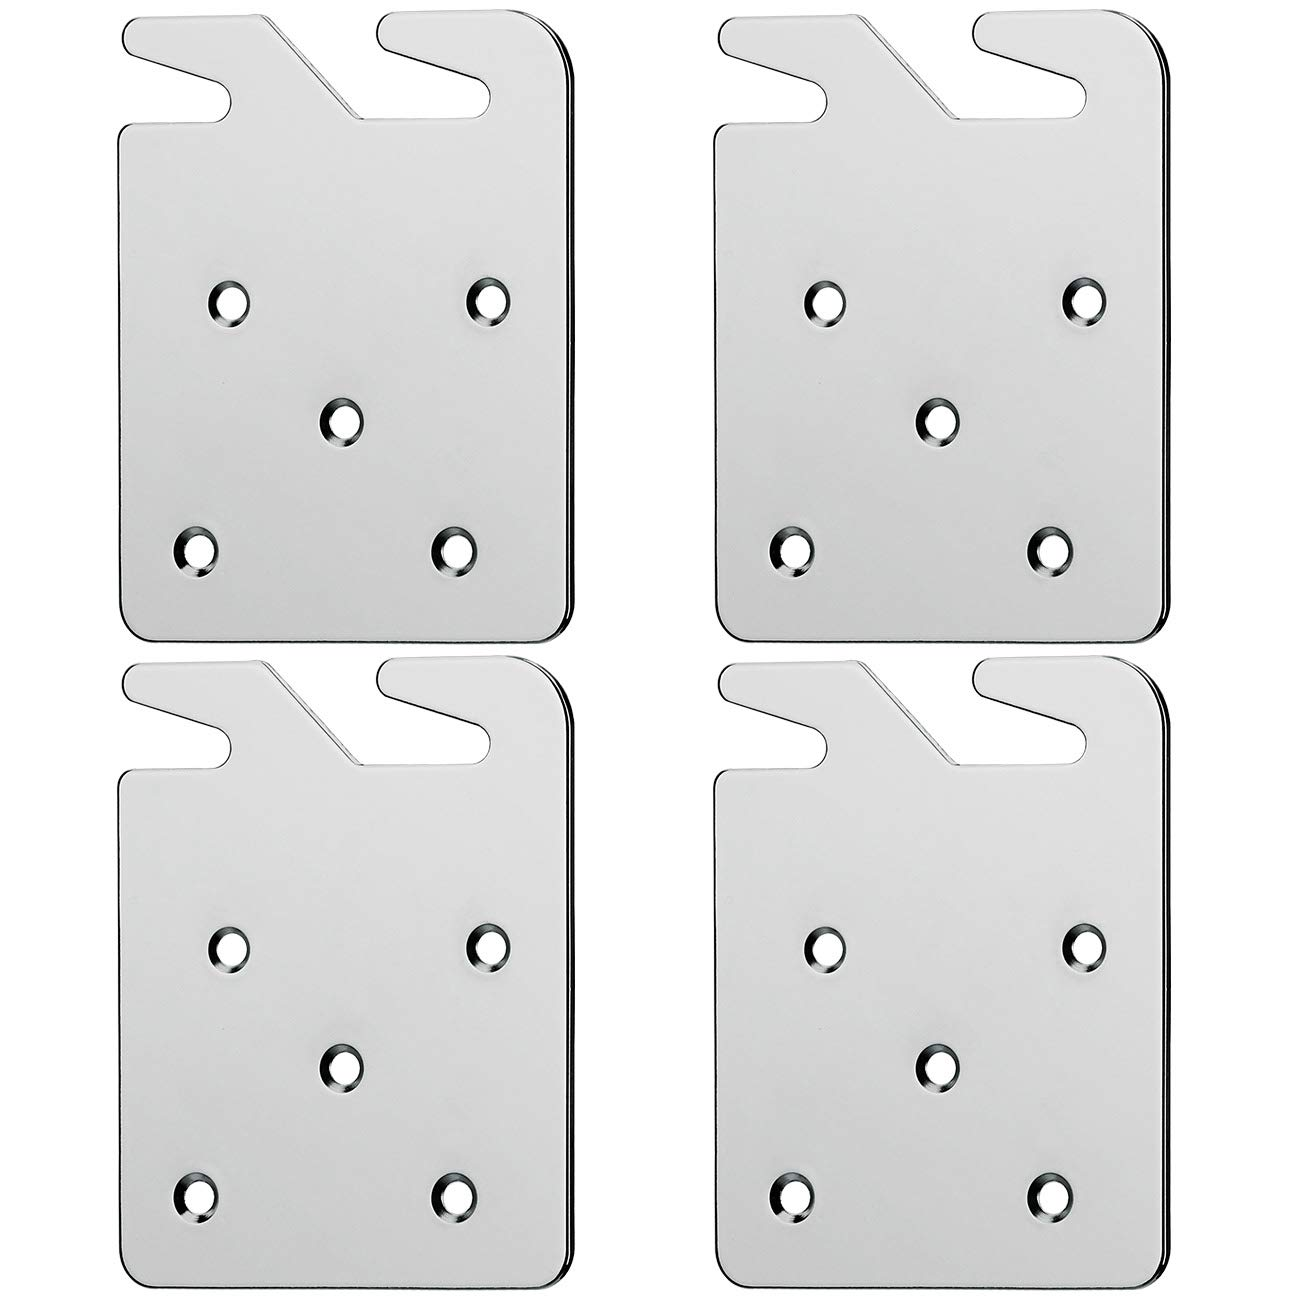 Alasdo Bed Rail Hooks Plates for Wooden Beds Frame Bracket Replacement Wooden Bed Parts or New Bed Constructions - Set of 4